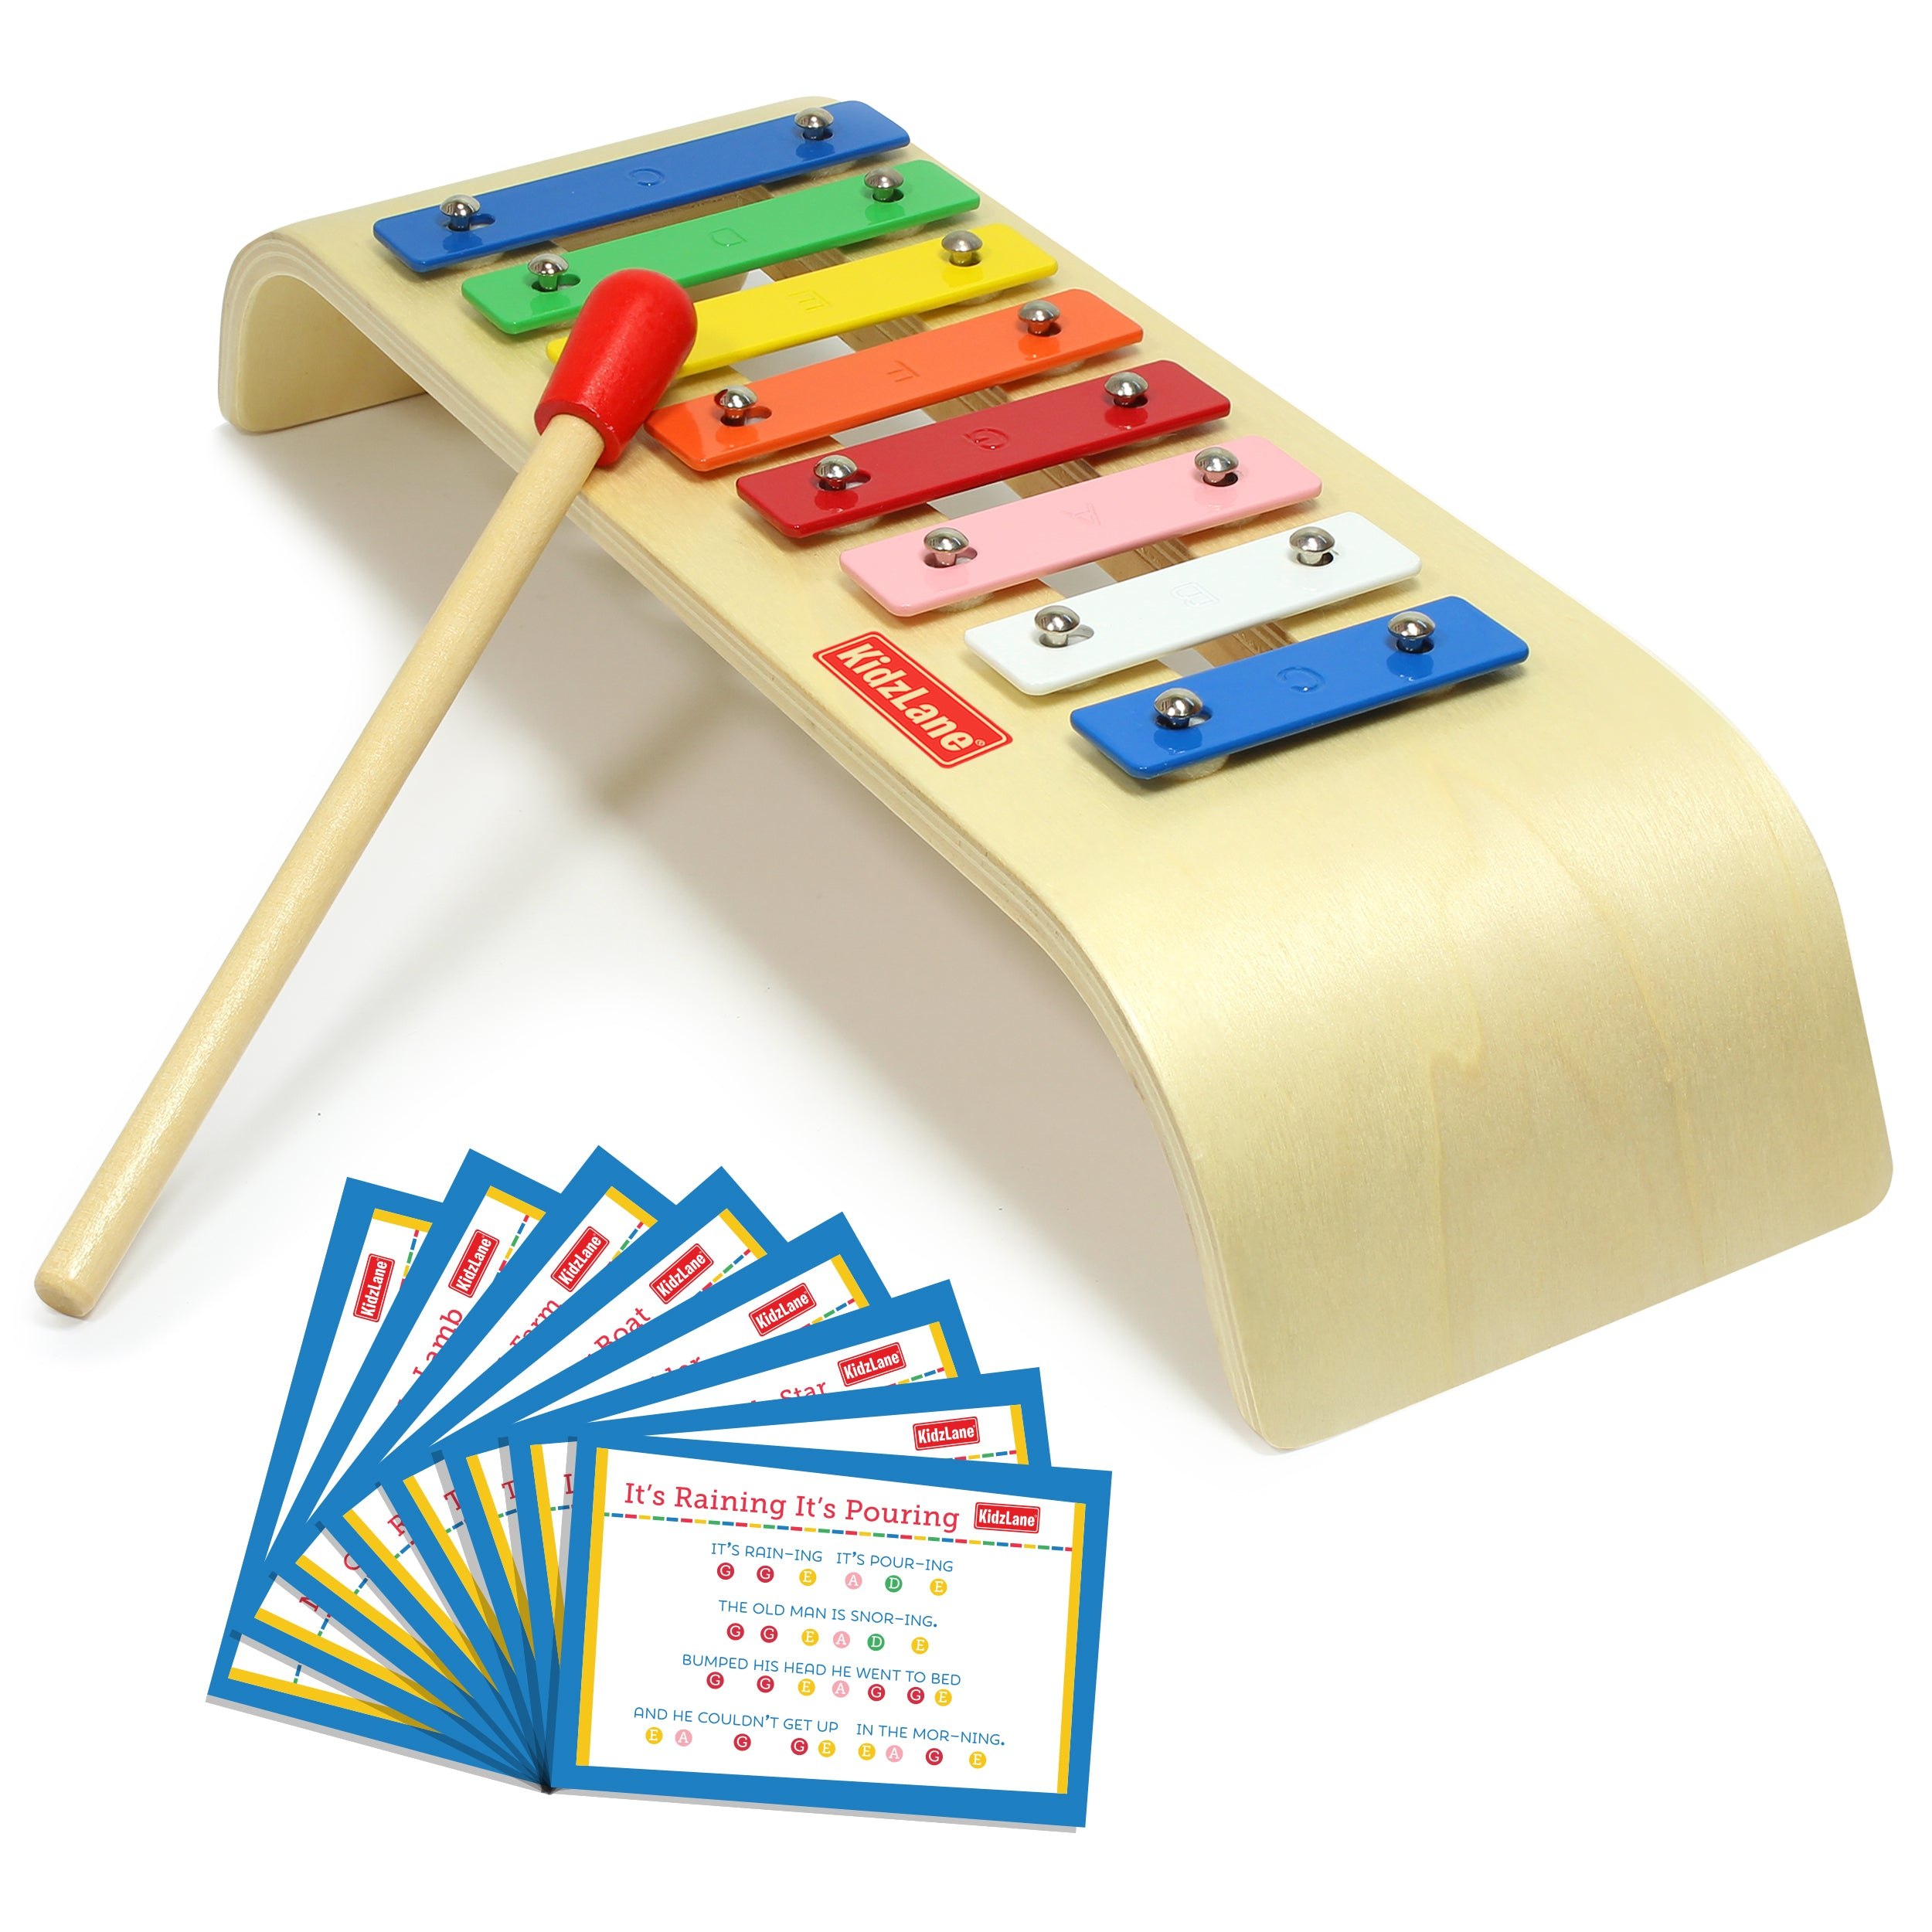 My First Wooden Xylophone - Kidzlane